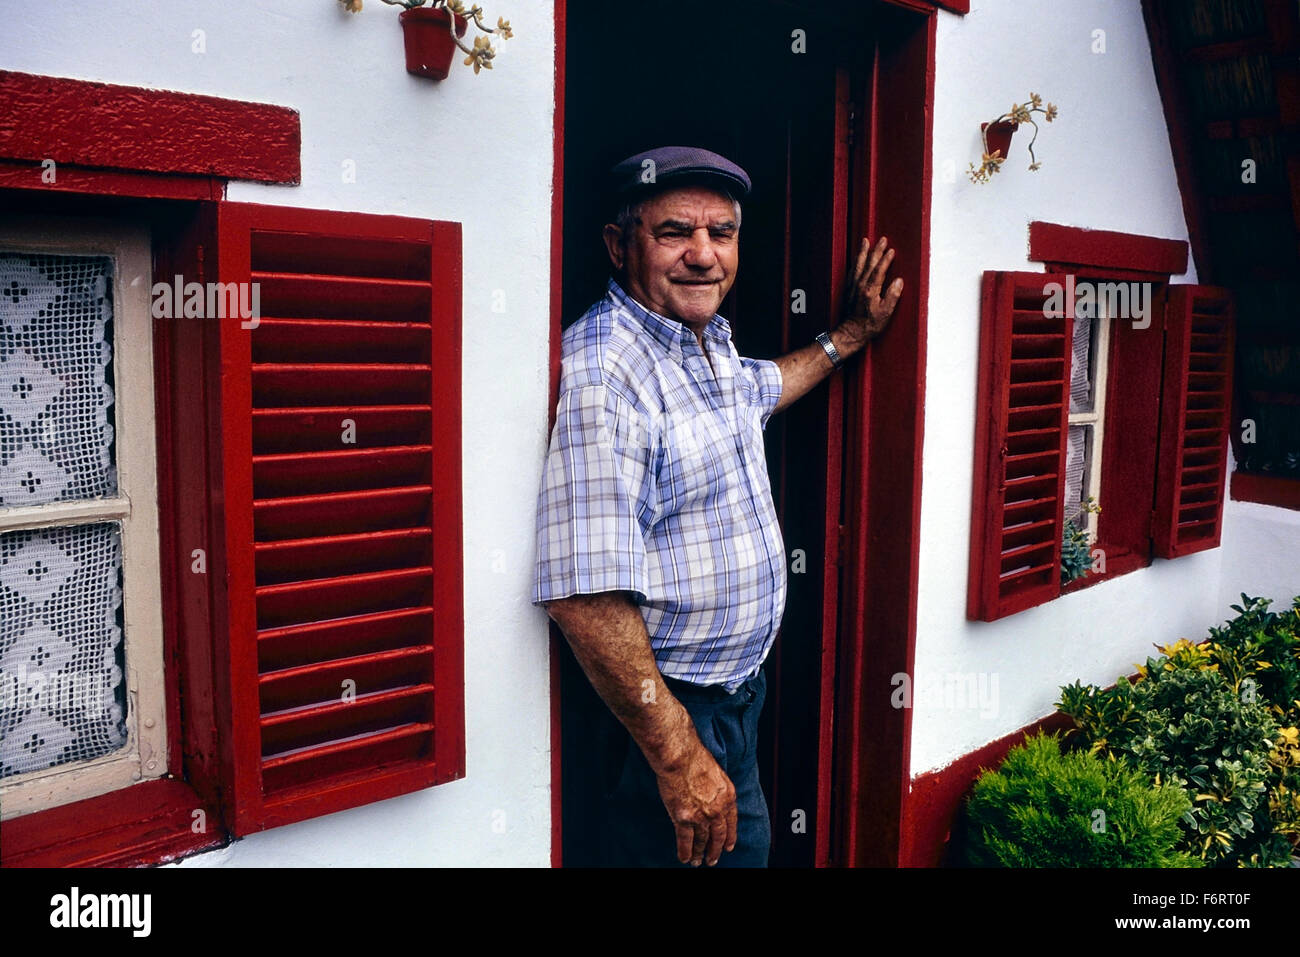 A local man posing at his front door. Santana. Madeira. Portugal - Stock Image